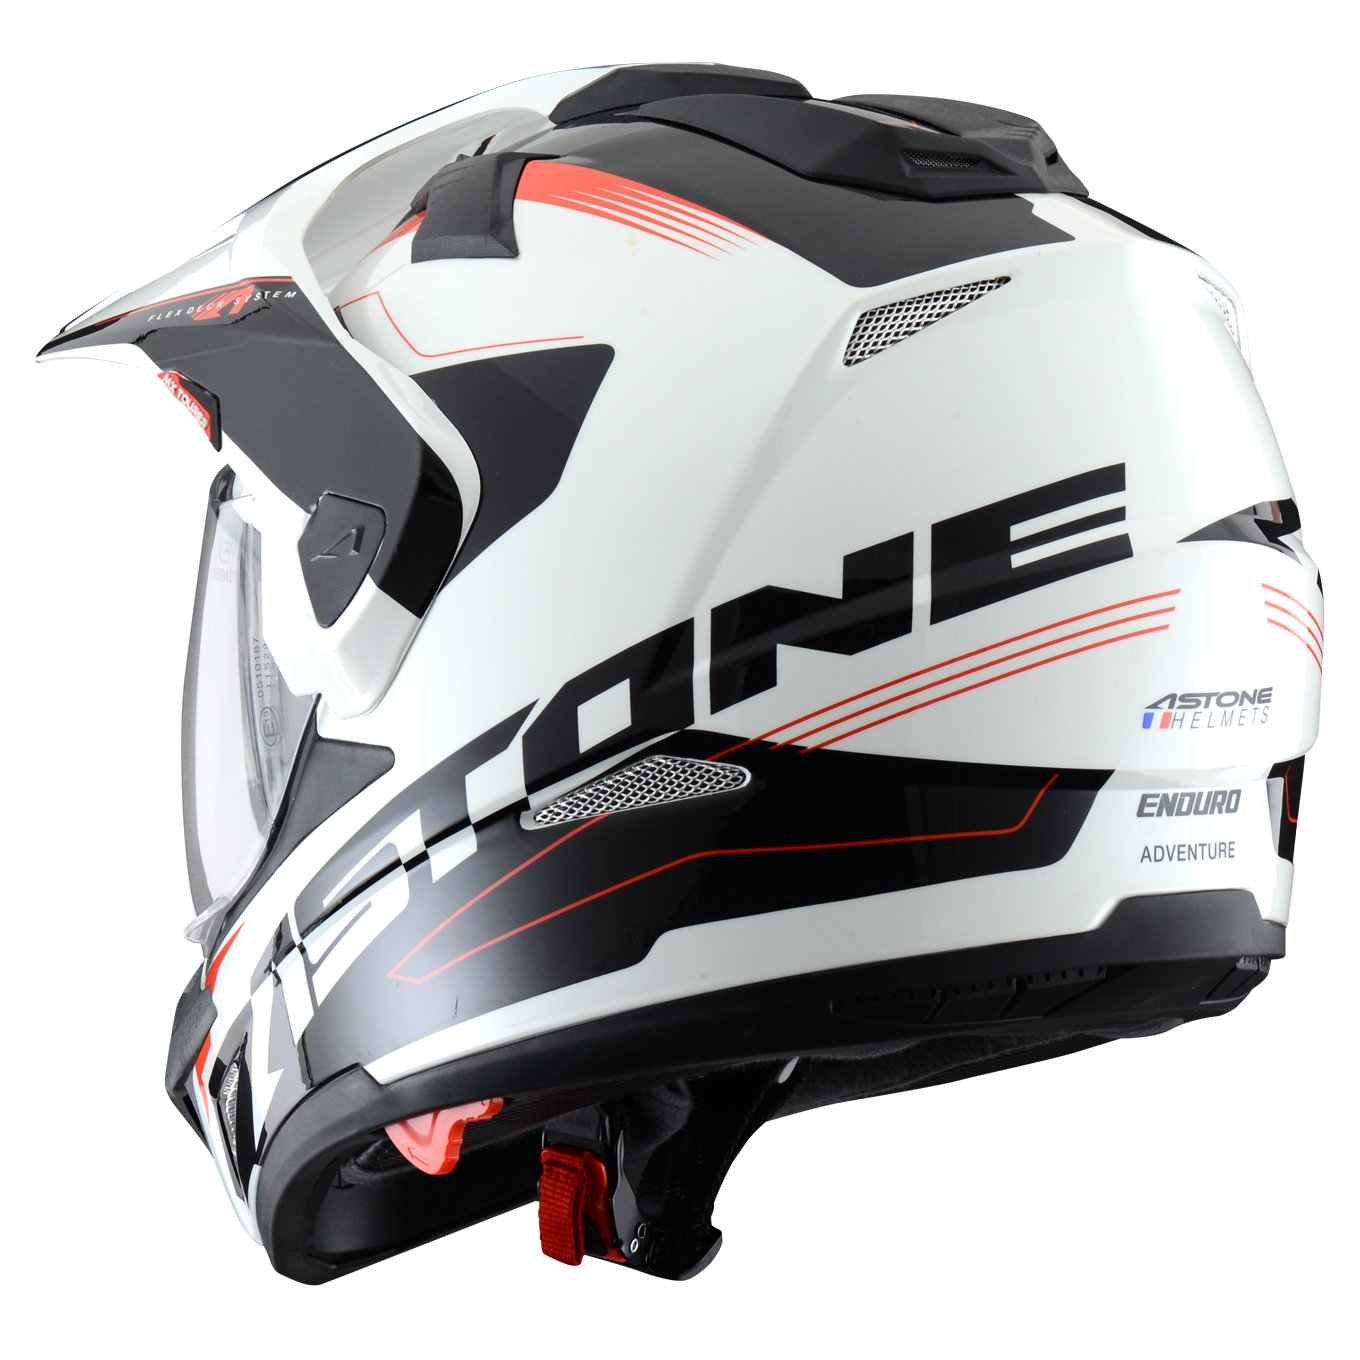 Astone Helmets Tourer Adventure, color Rojo, talla S: Amazon.es: Coche y moto